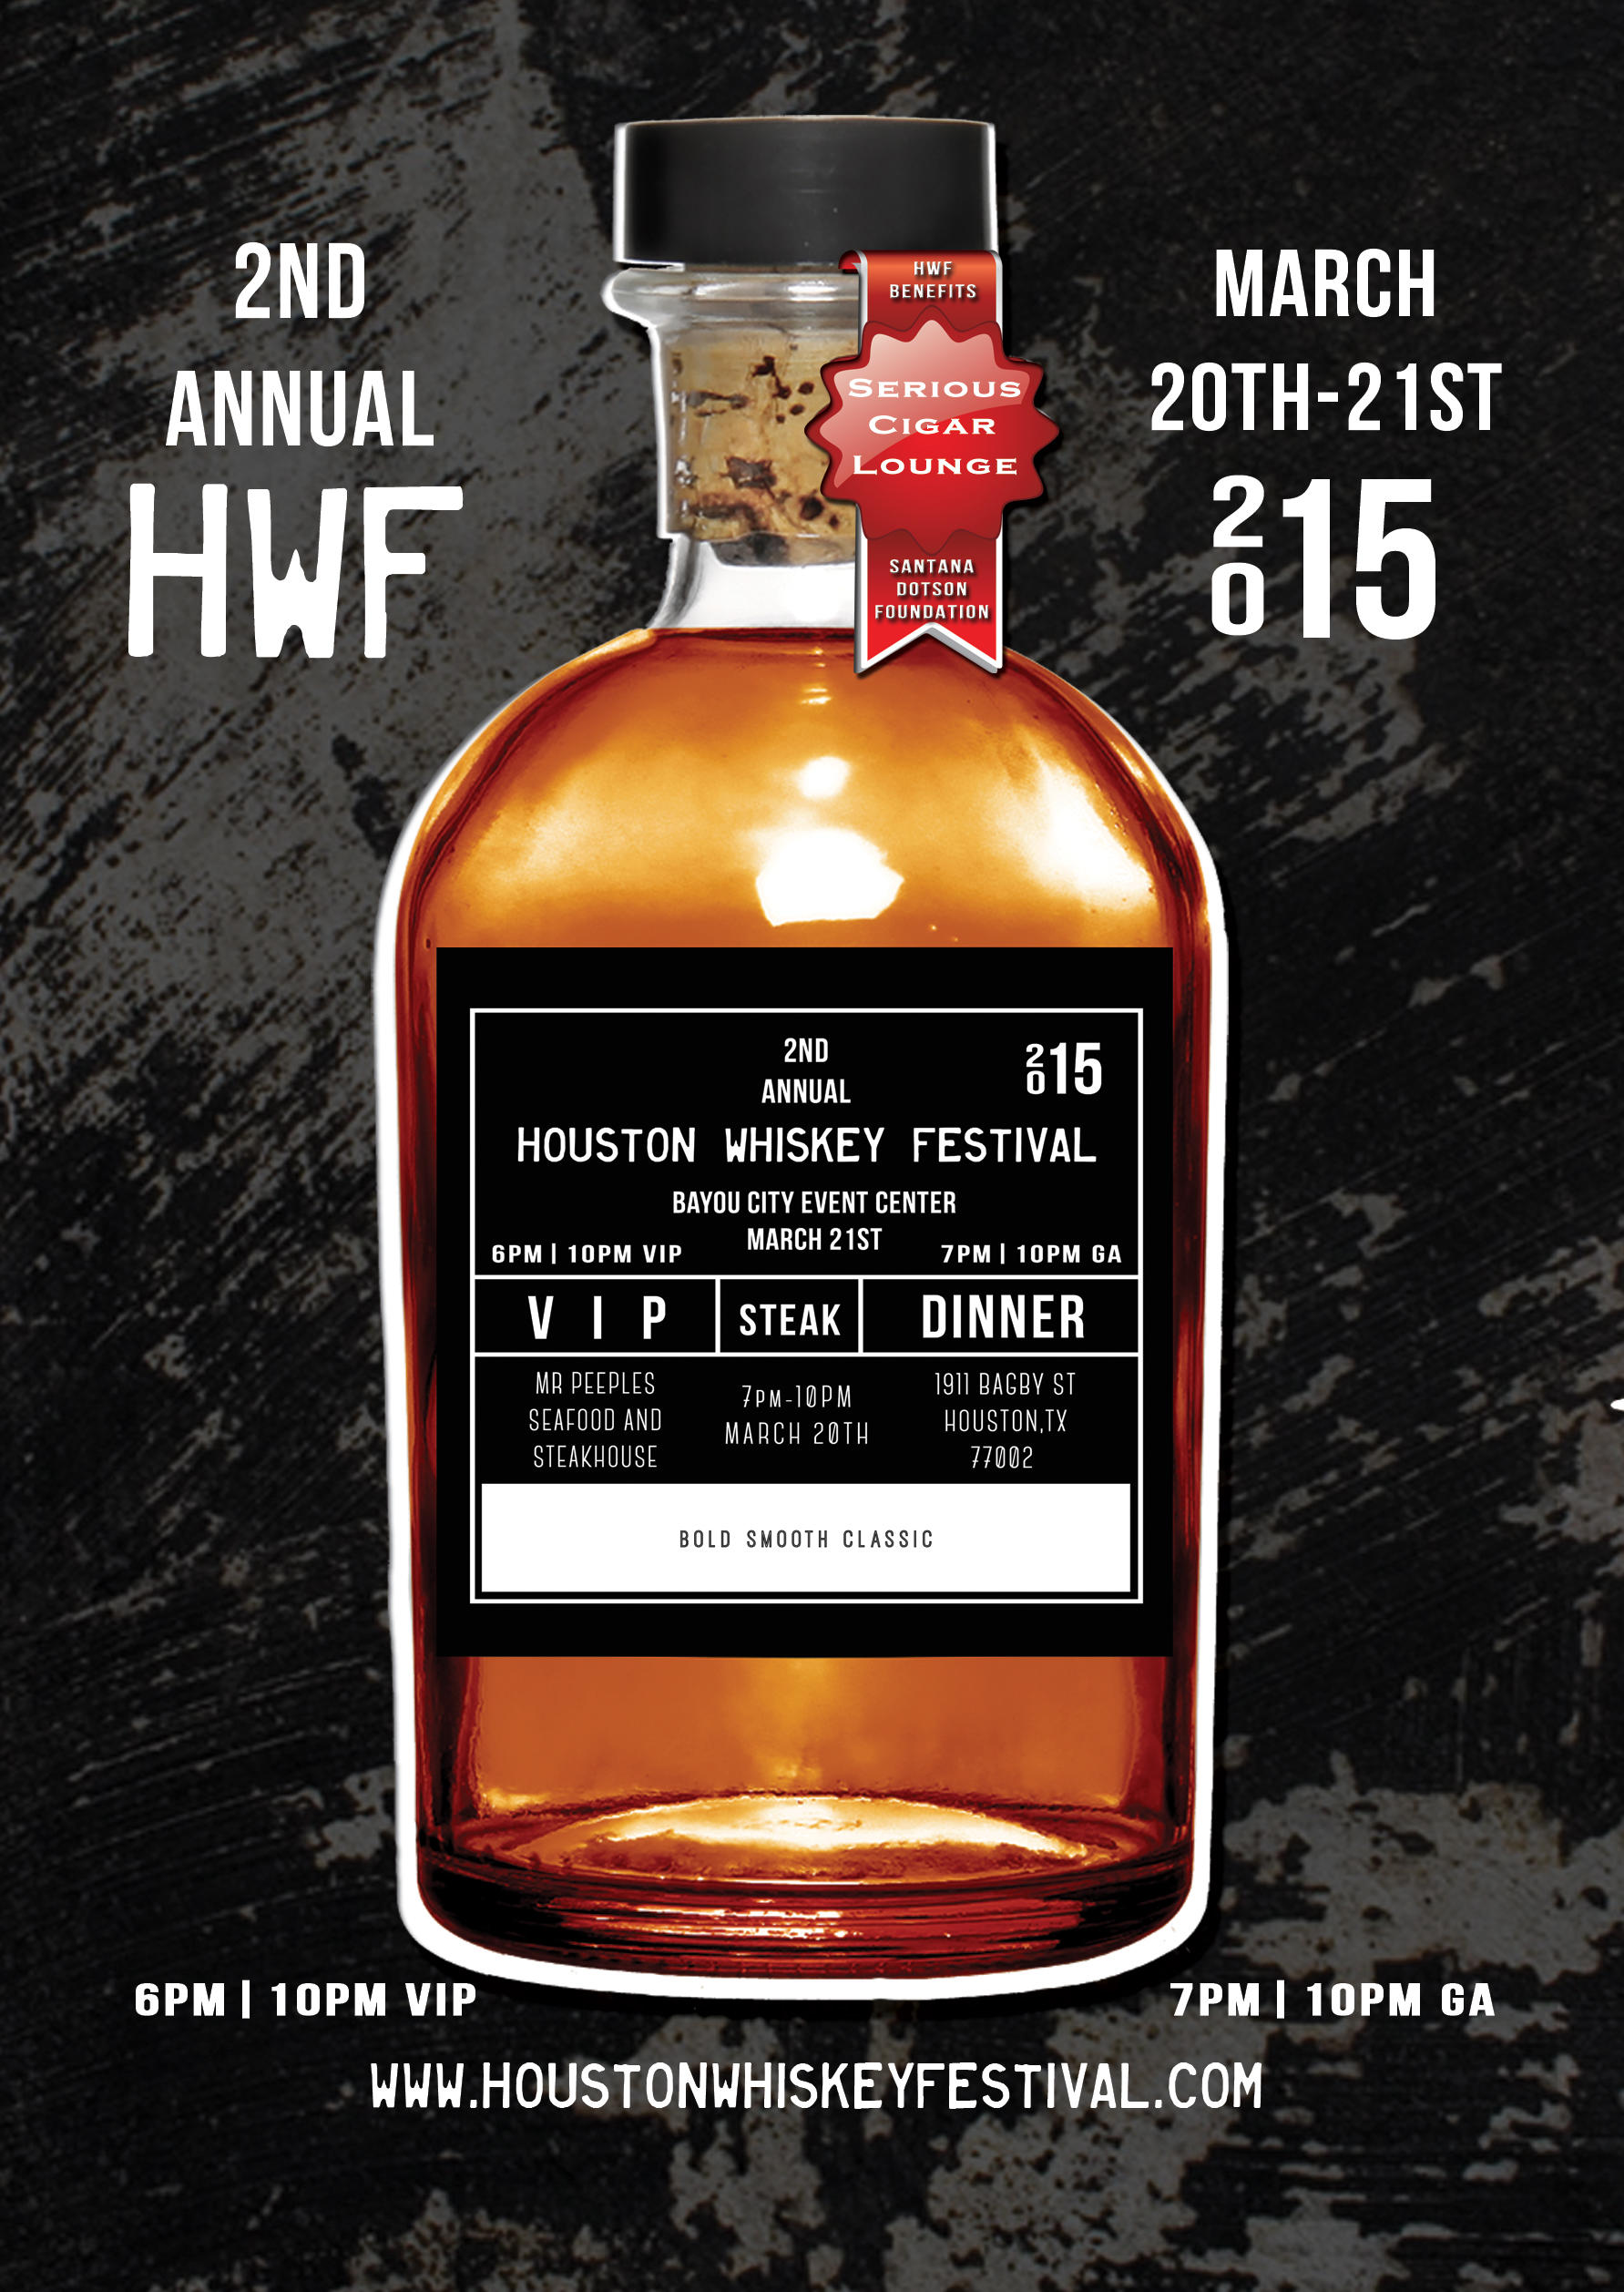 2015 Houston Whiskey Festival flyer